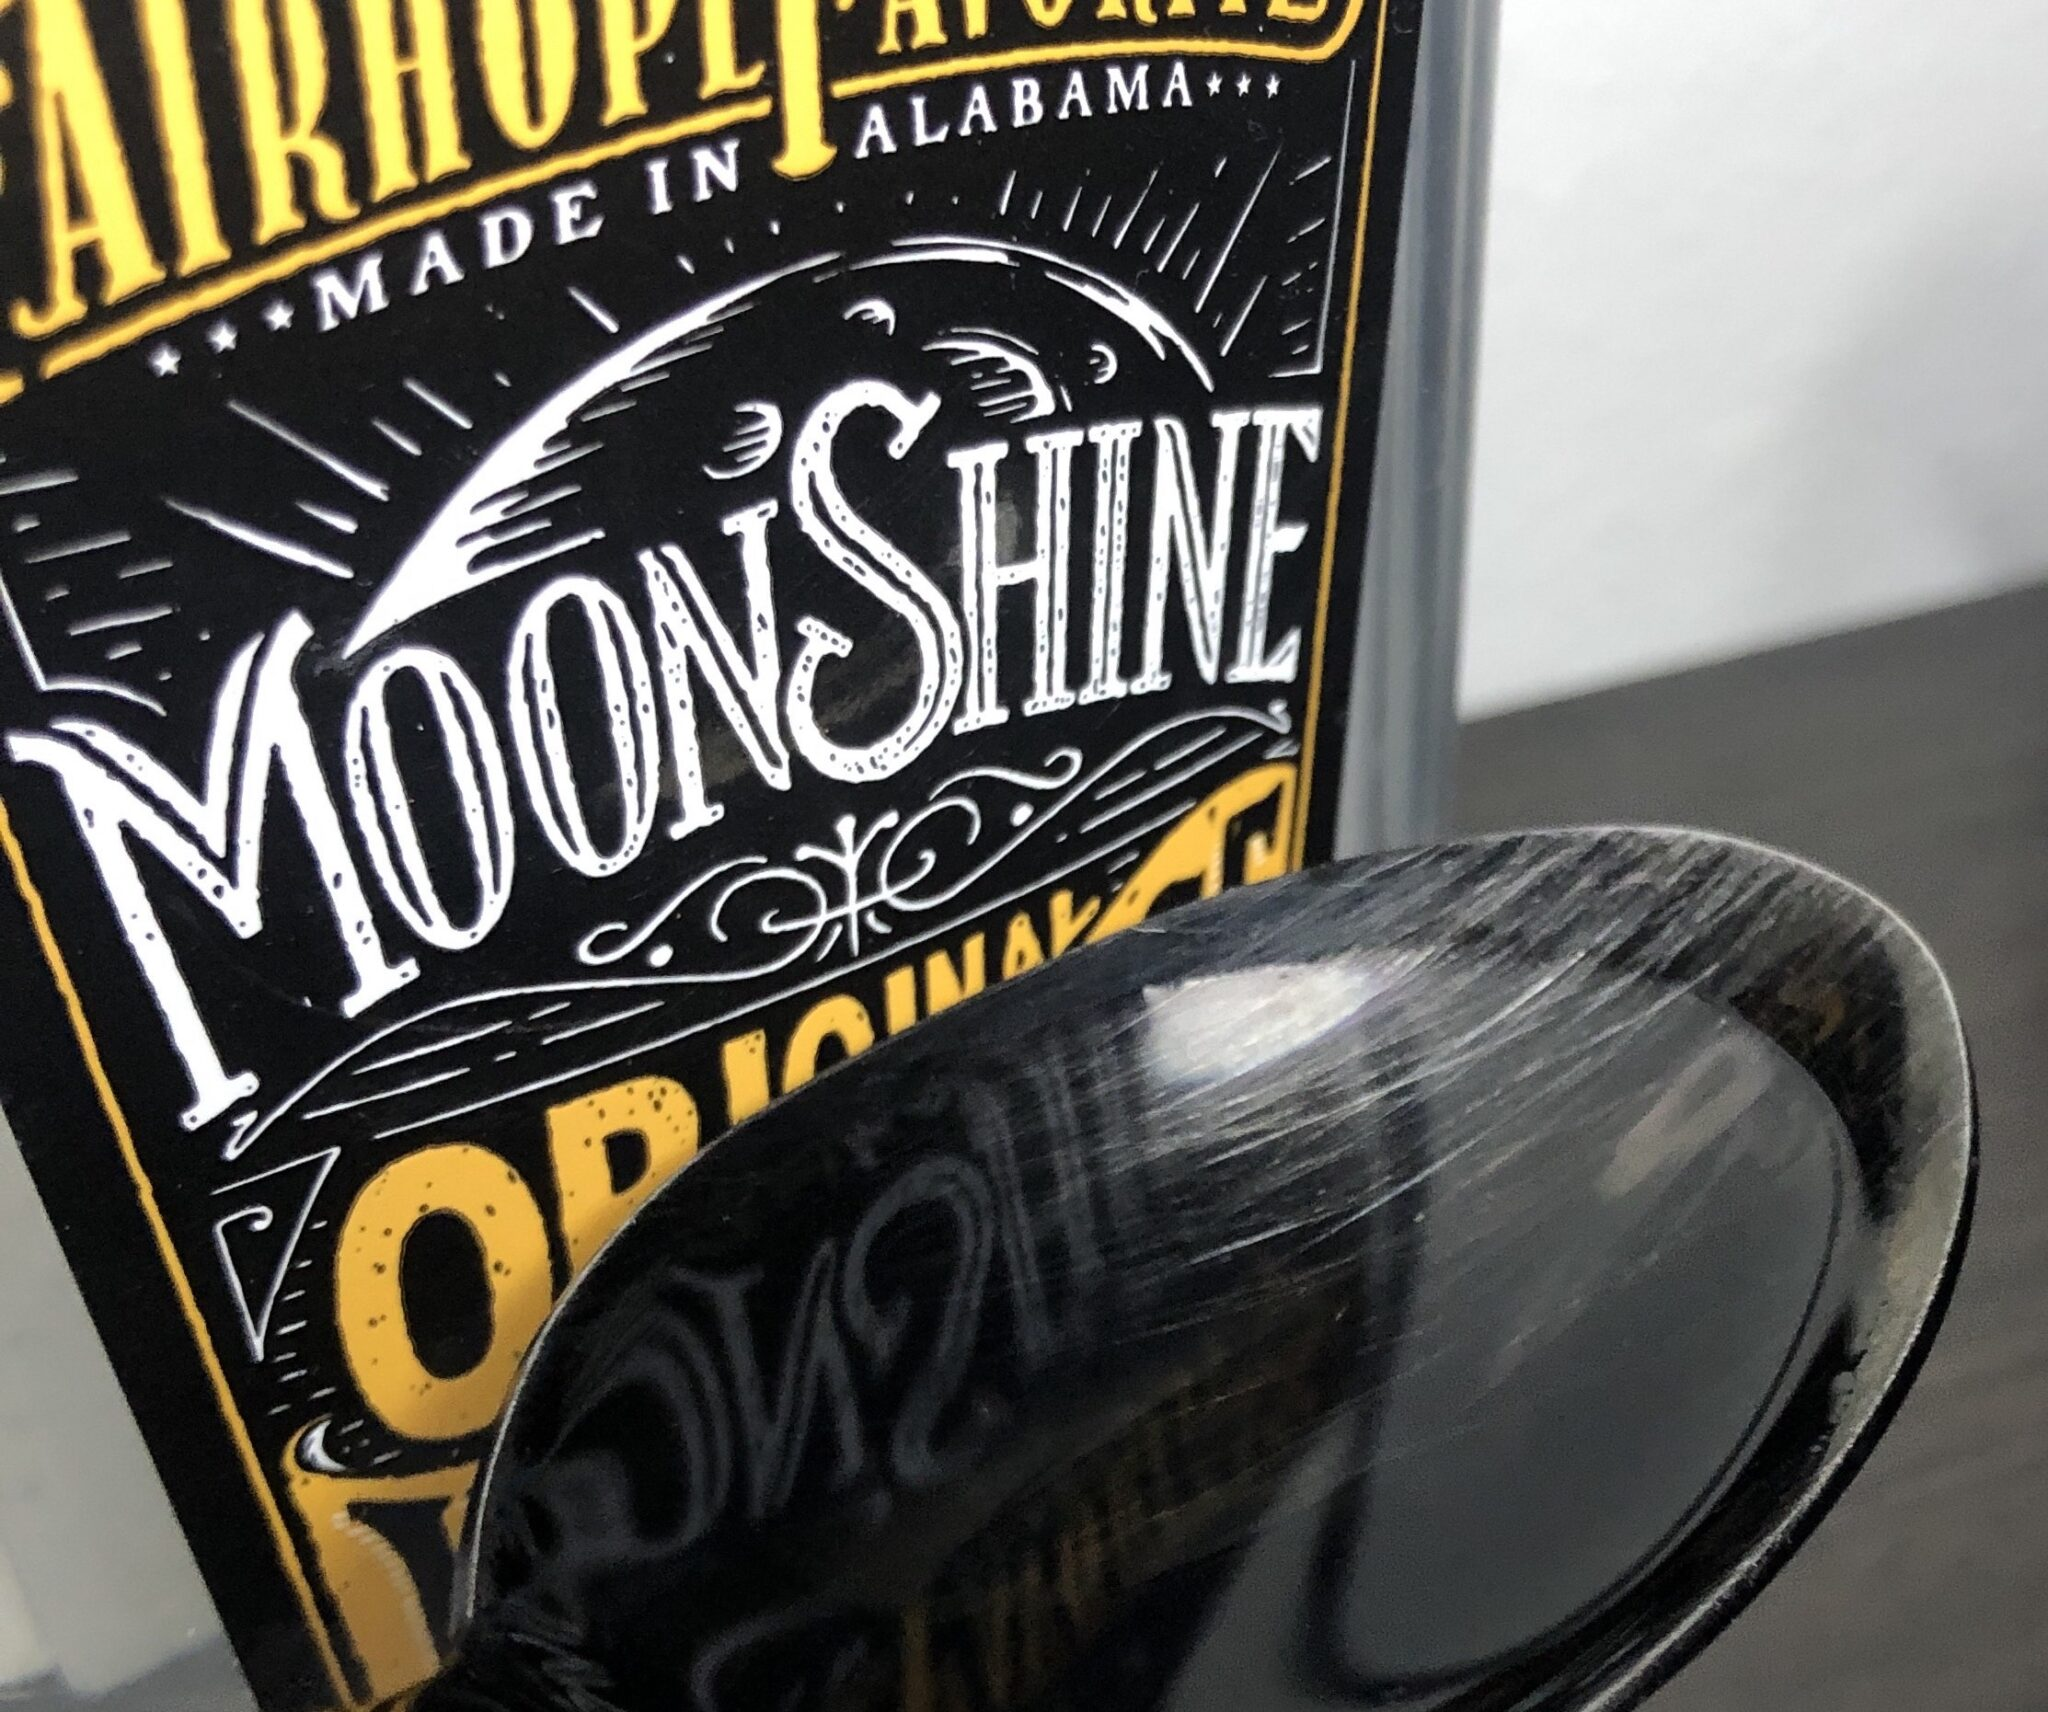 Fairhope Favorite's Original Moonshine Hot Sauce